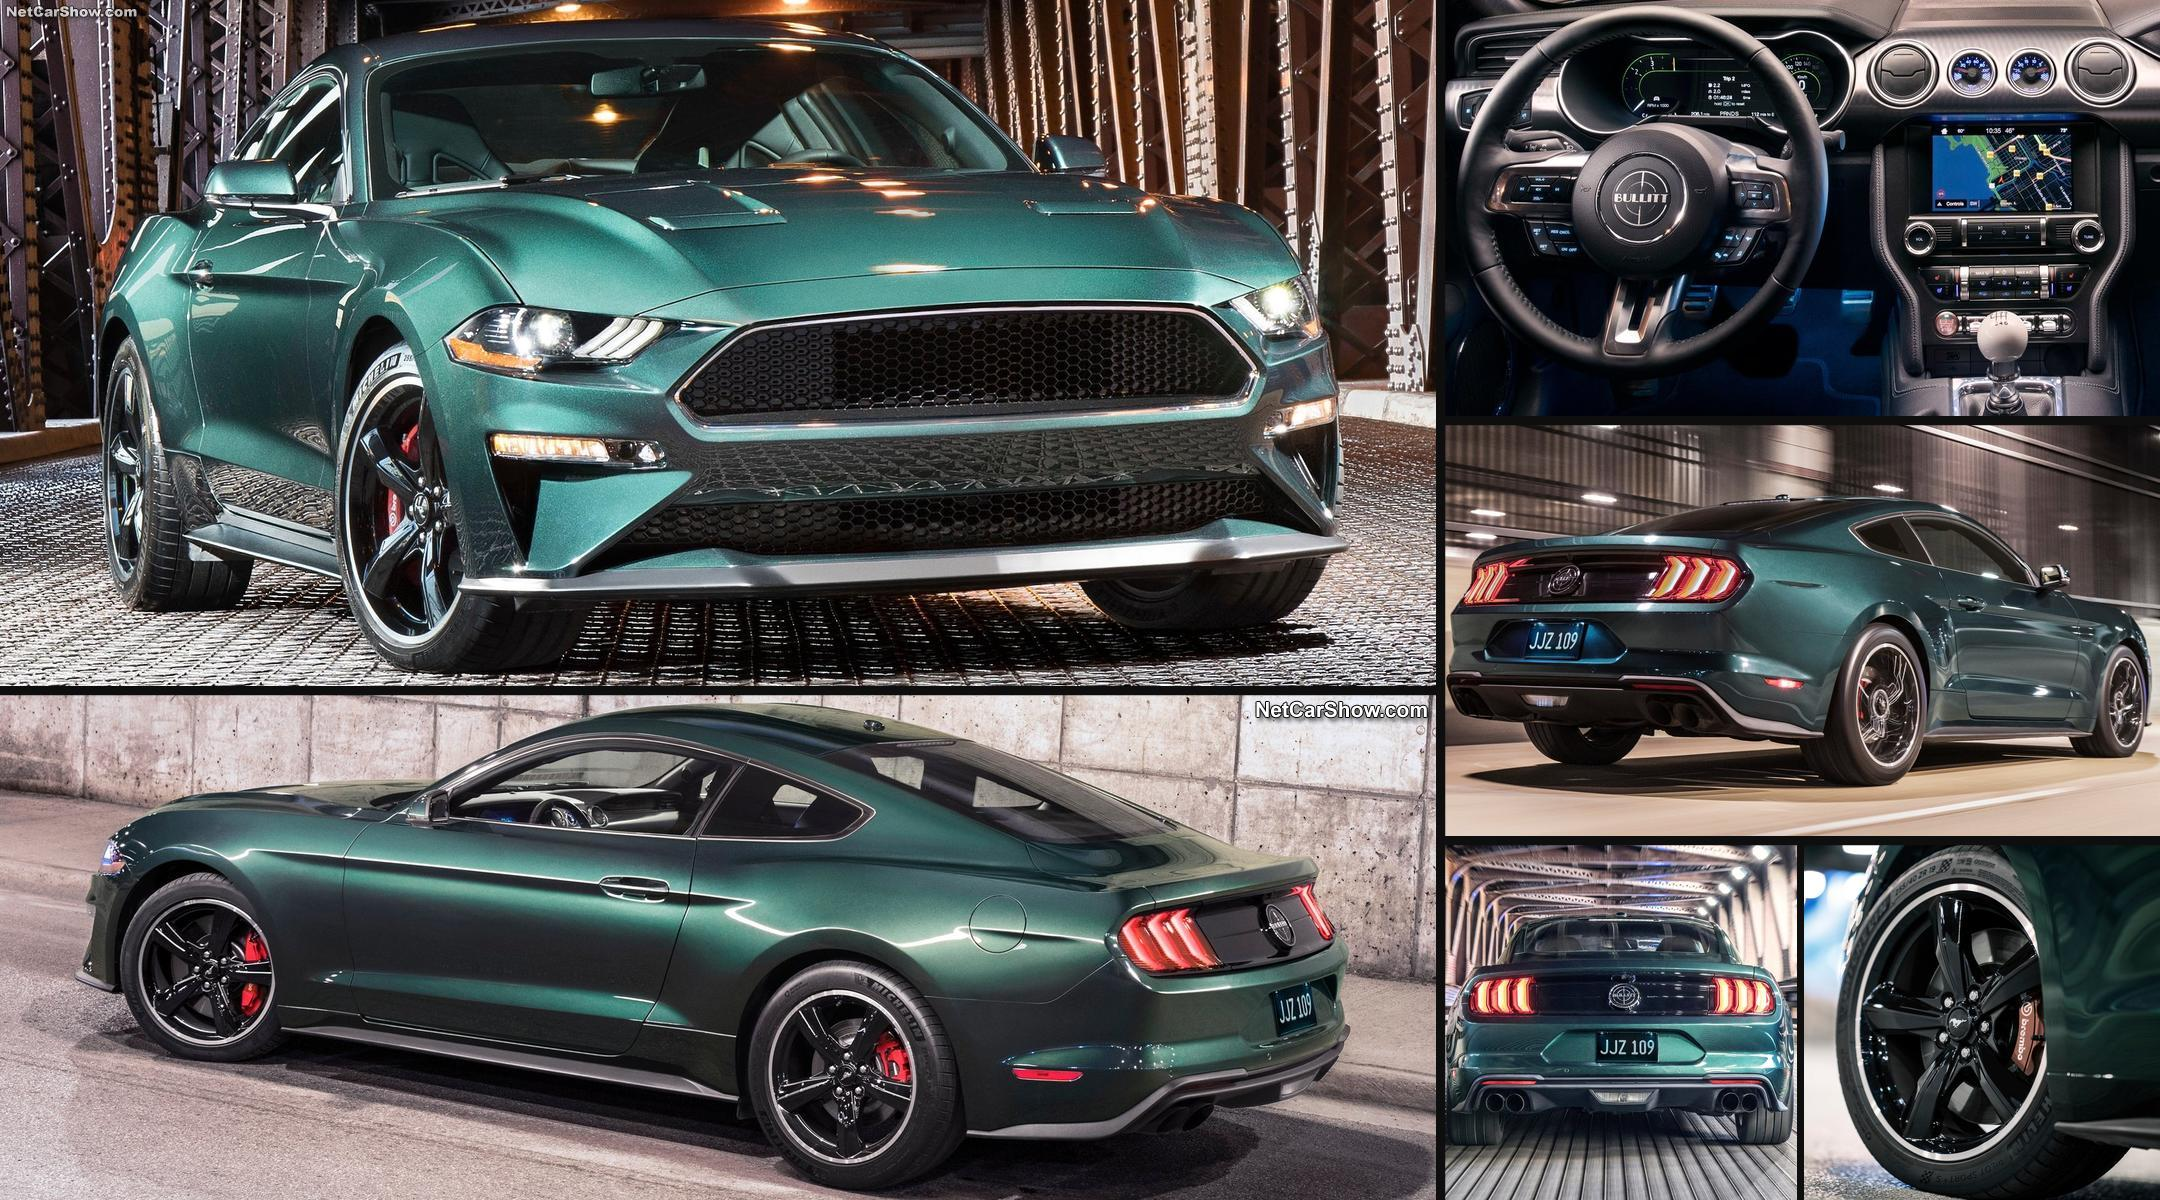 2018 ford bullitt mustang new car release date and review 2018 amanda felicia. Black Bedroom Furniture Sets. Home Design Ideas